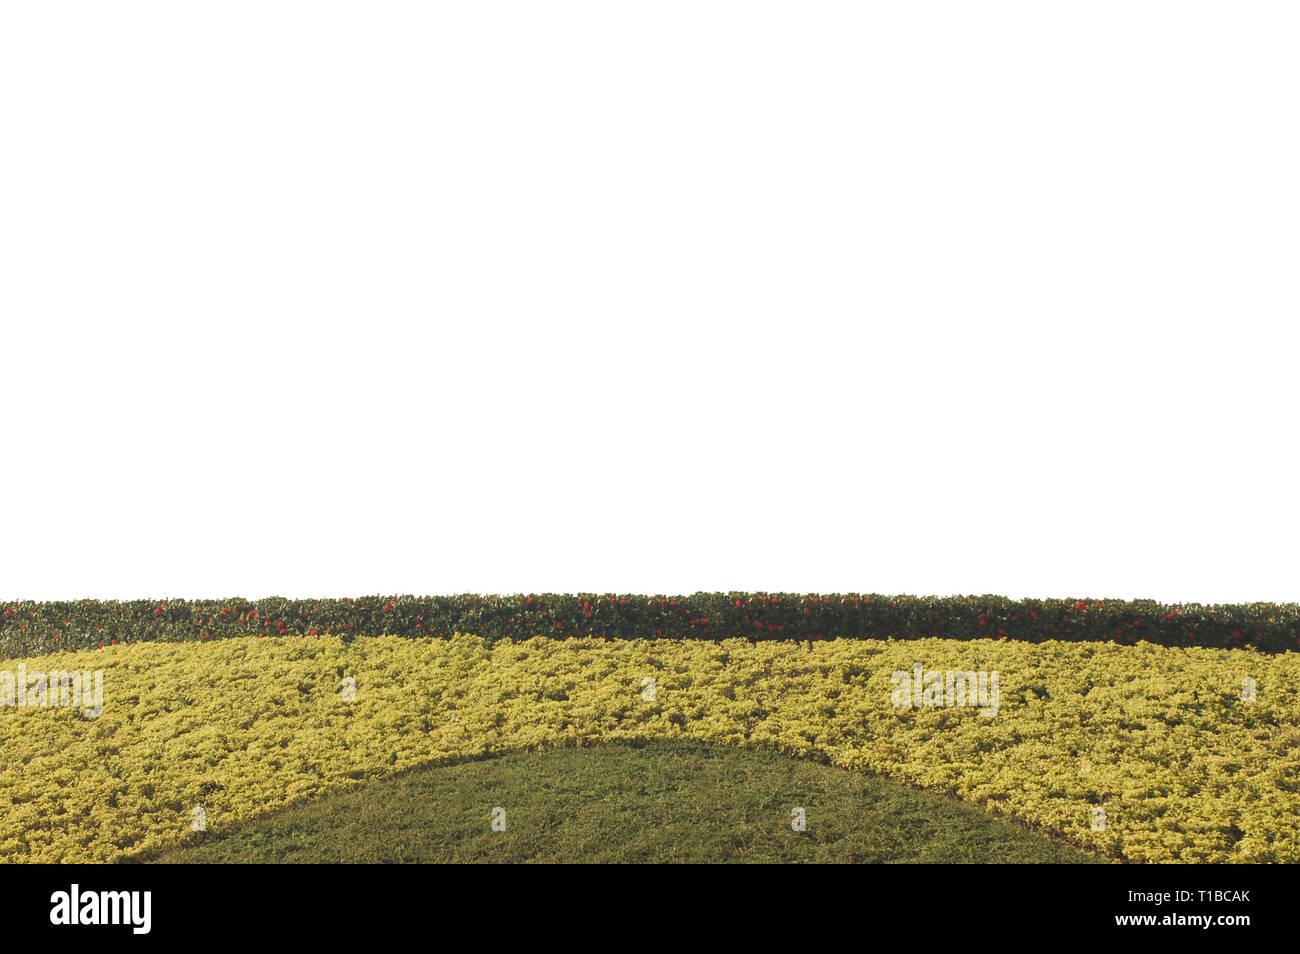 Topiary Wall Art High Resolution Stock Photography And Images Alamy